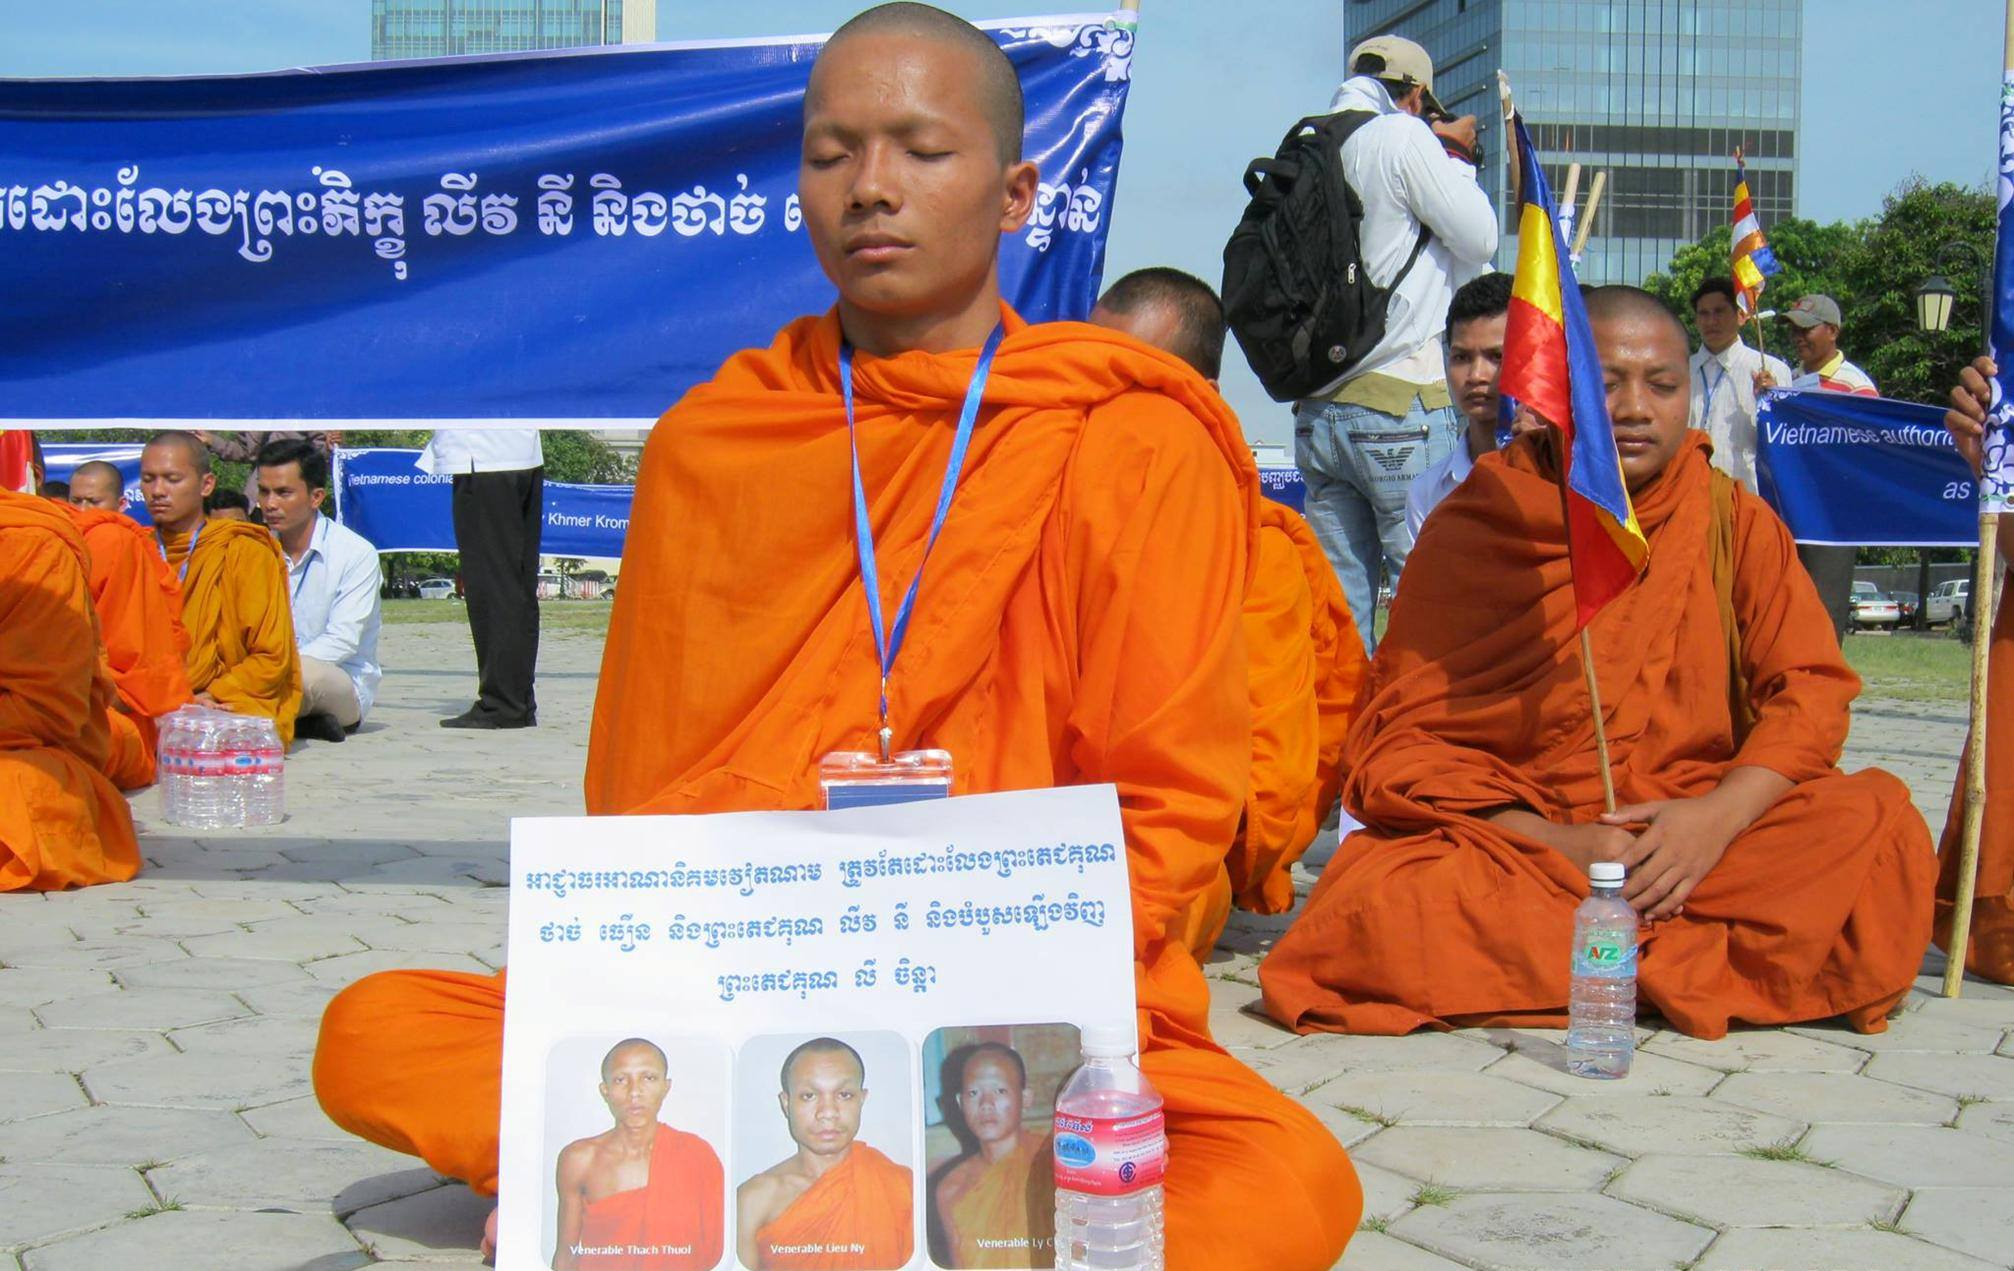 Khmer Krom: US Urge Vietnam to Respect Religious Freedoms, Including Those of Buddhist Monks